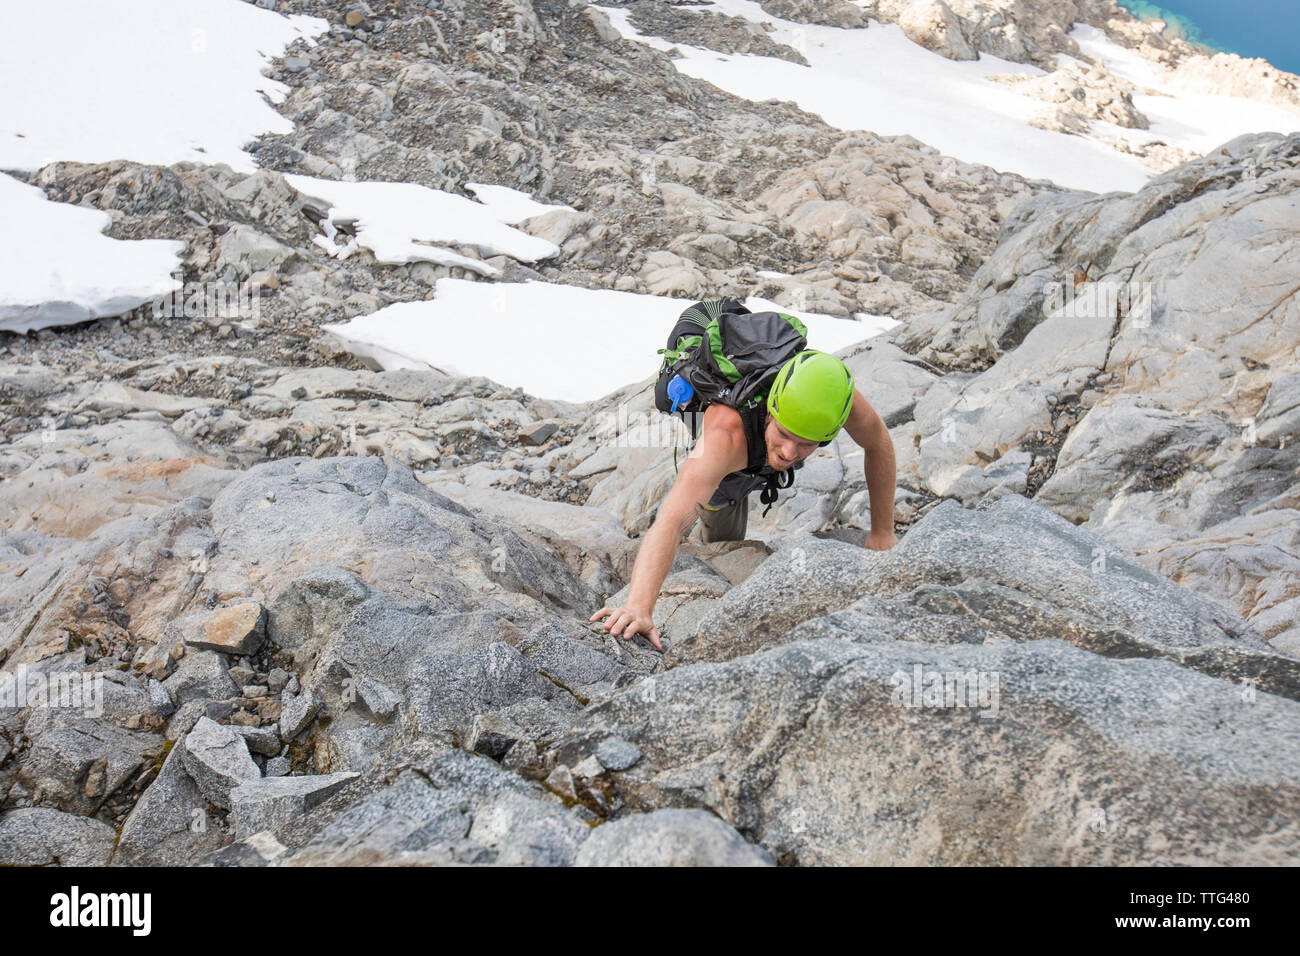 Climber ascends a low angle route on Douglas Peak, British Columbia. - Stock Image